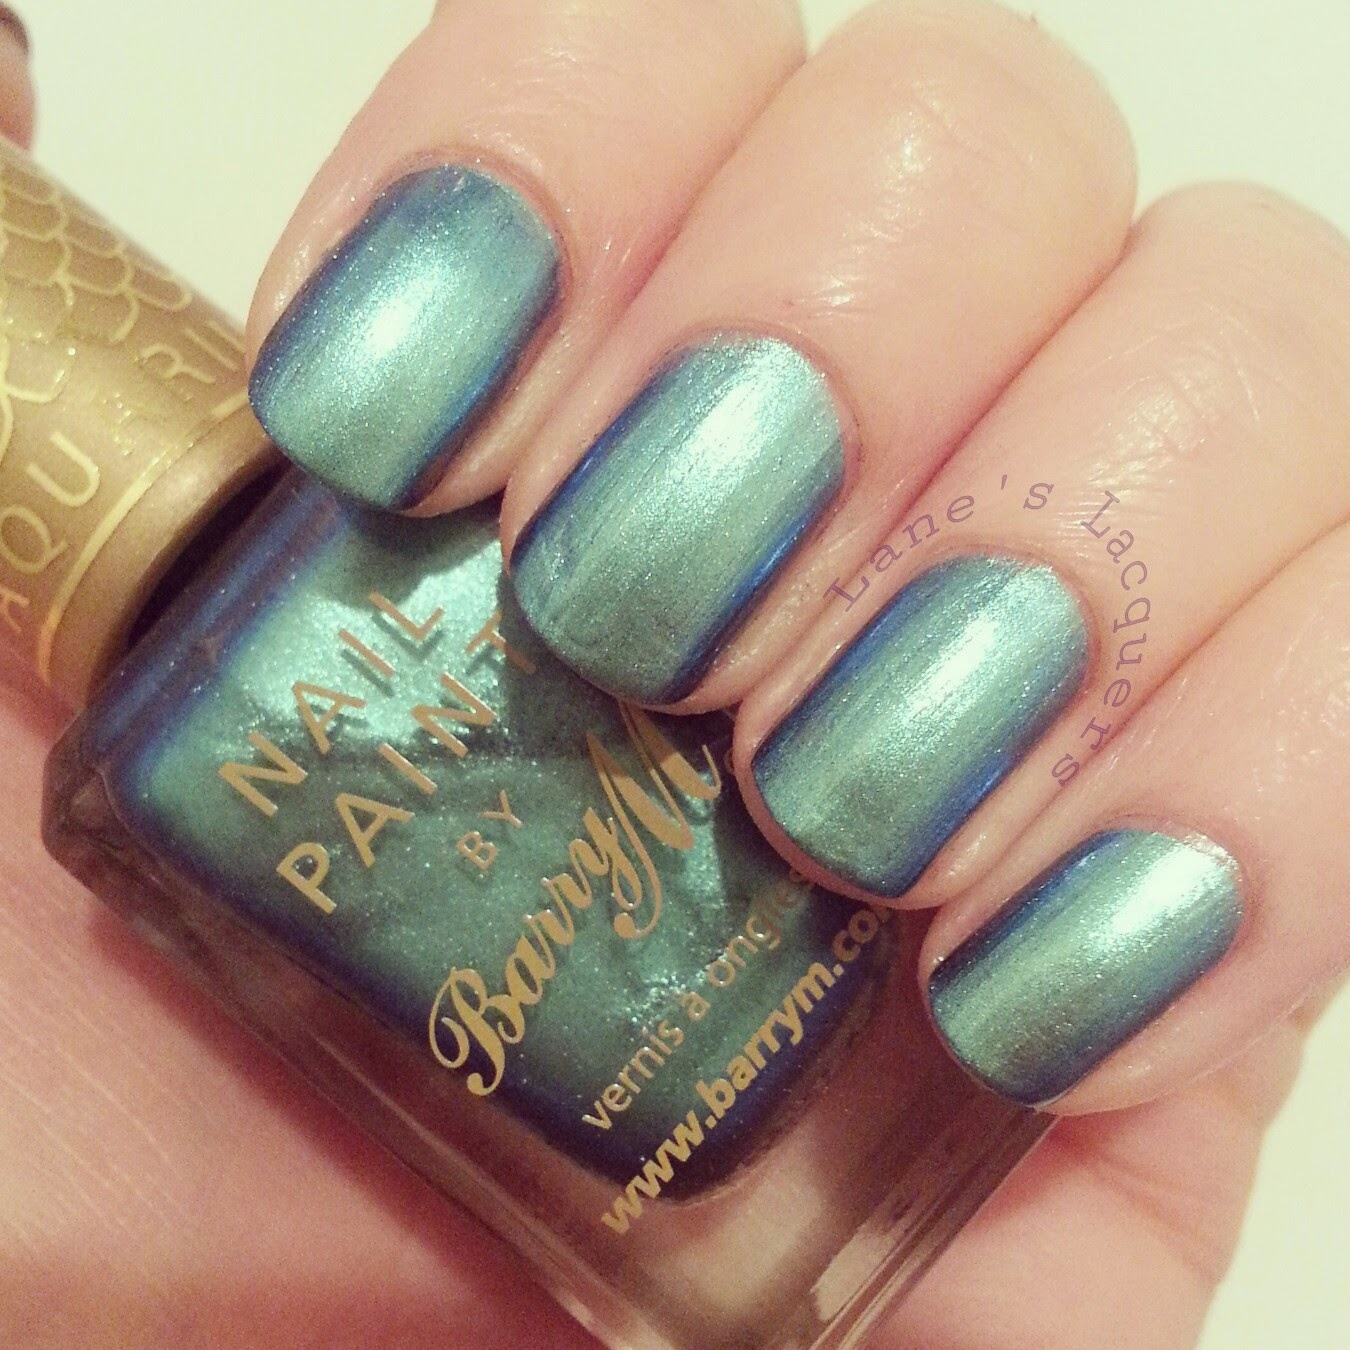 barry-m-aquarium-blue-aqnp6-swatch-nails